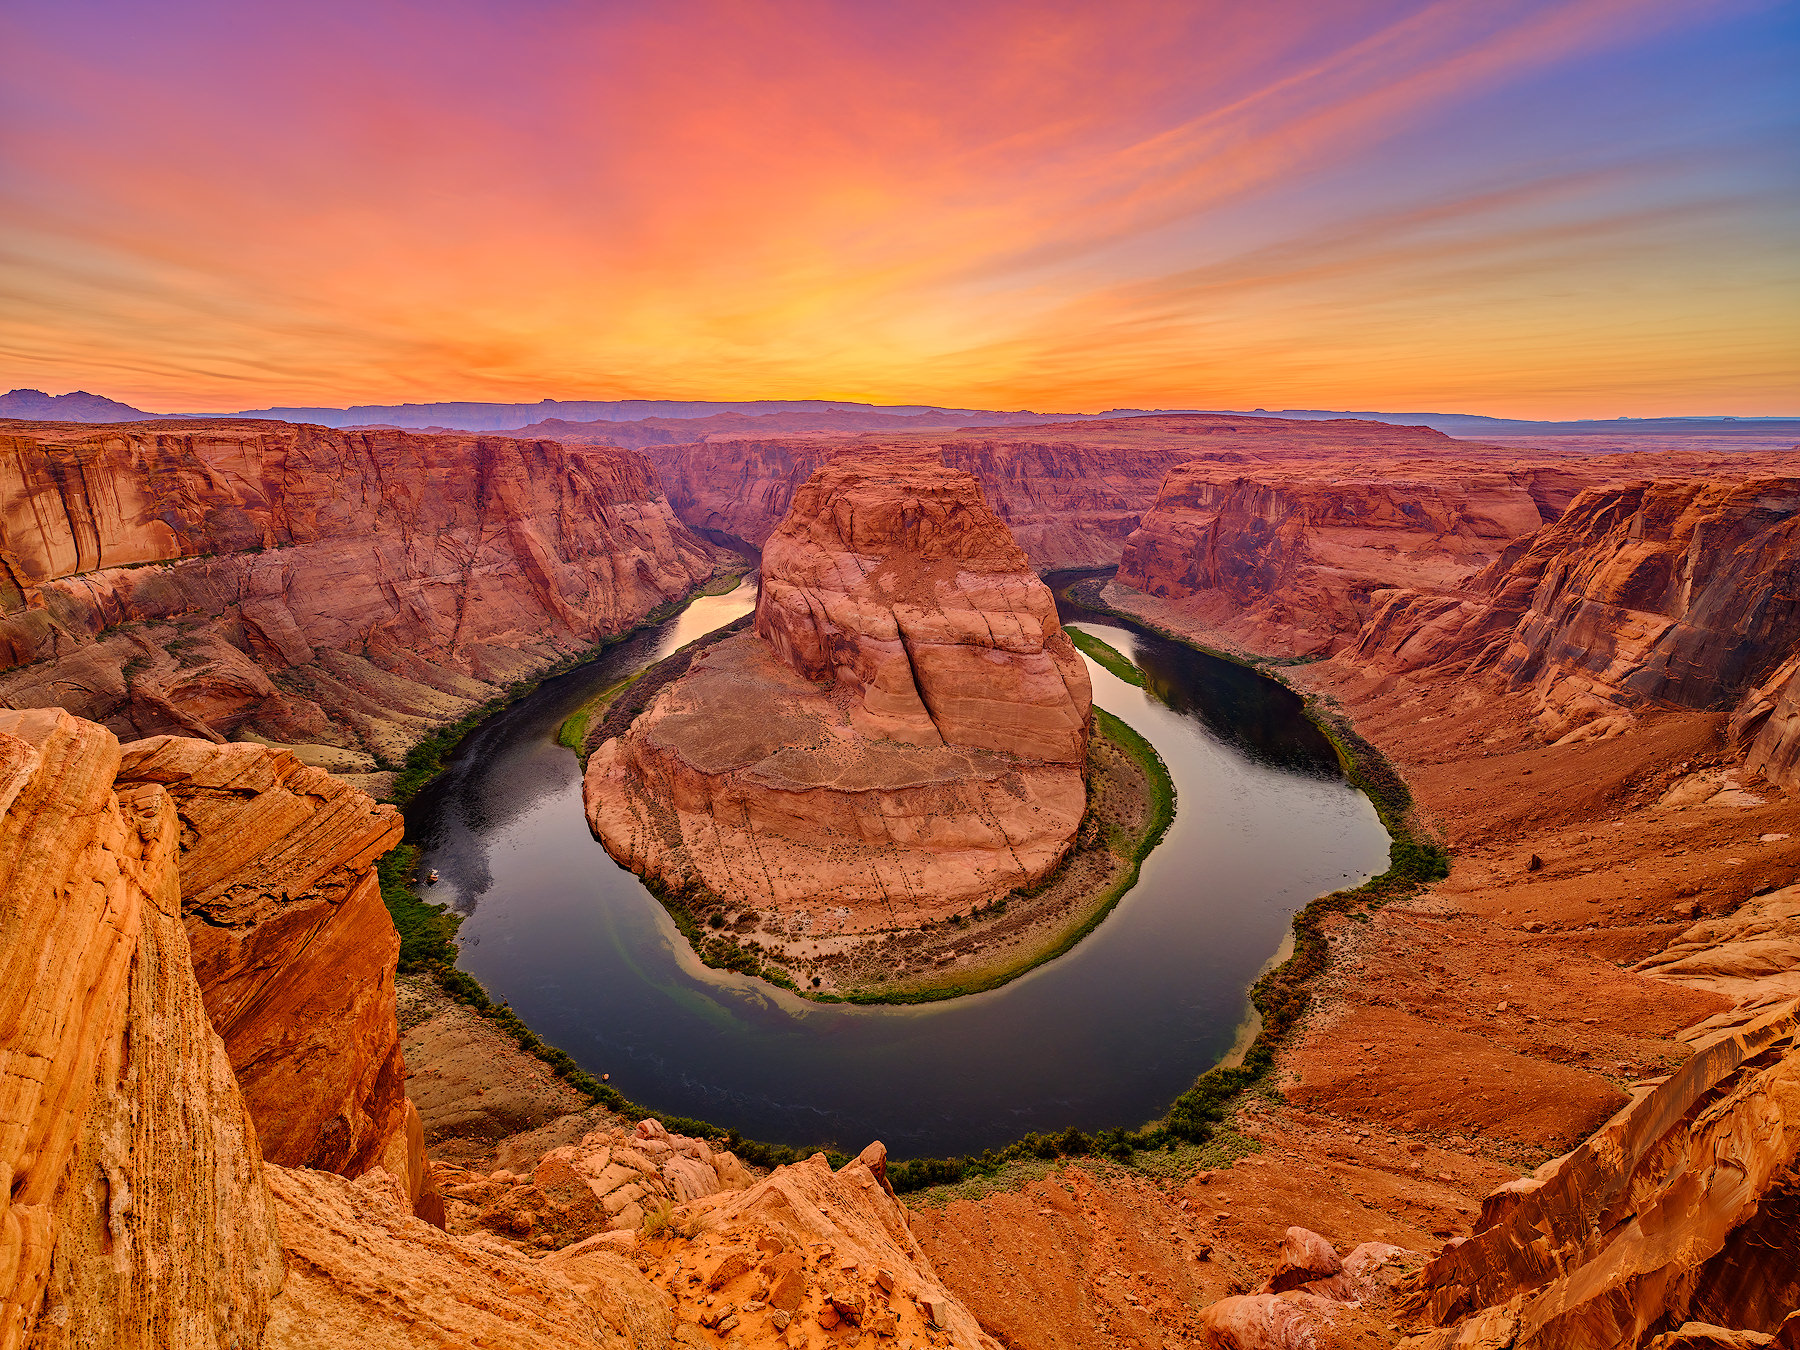 a dramatic photograph of Horseshoe Bend in Page, Arizona at sunset in the American Southwest.  Fine Art Limited Edition Photography by artist Andrew Shoemaker